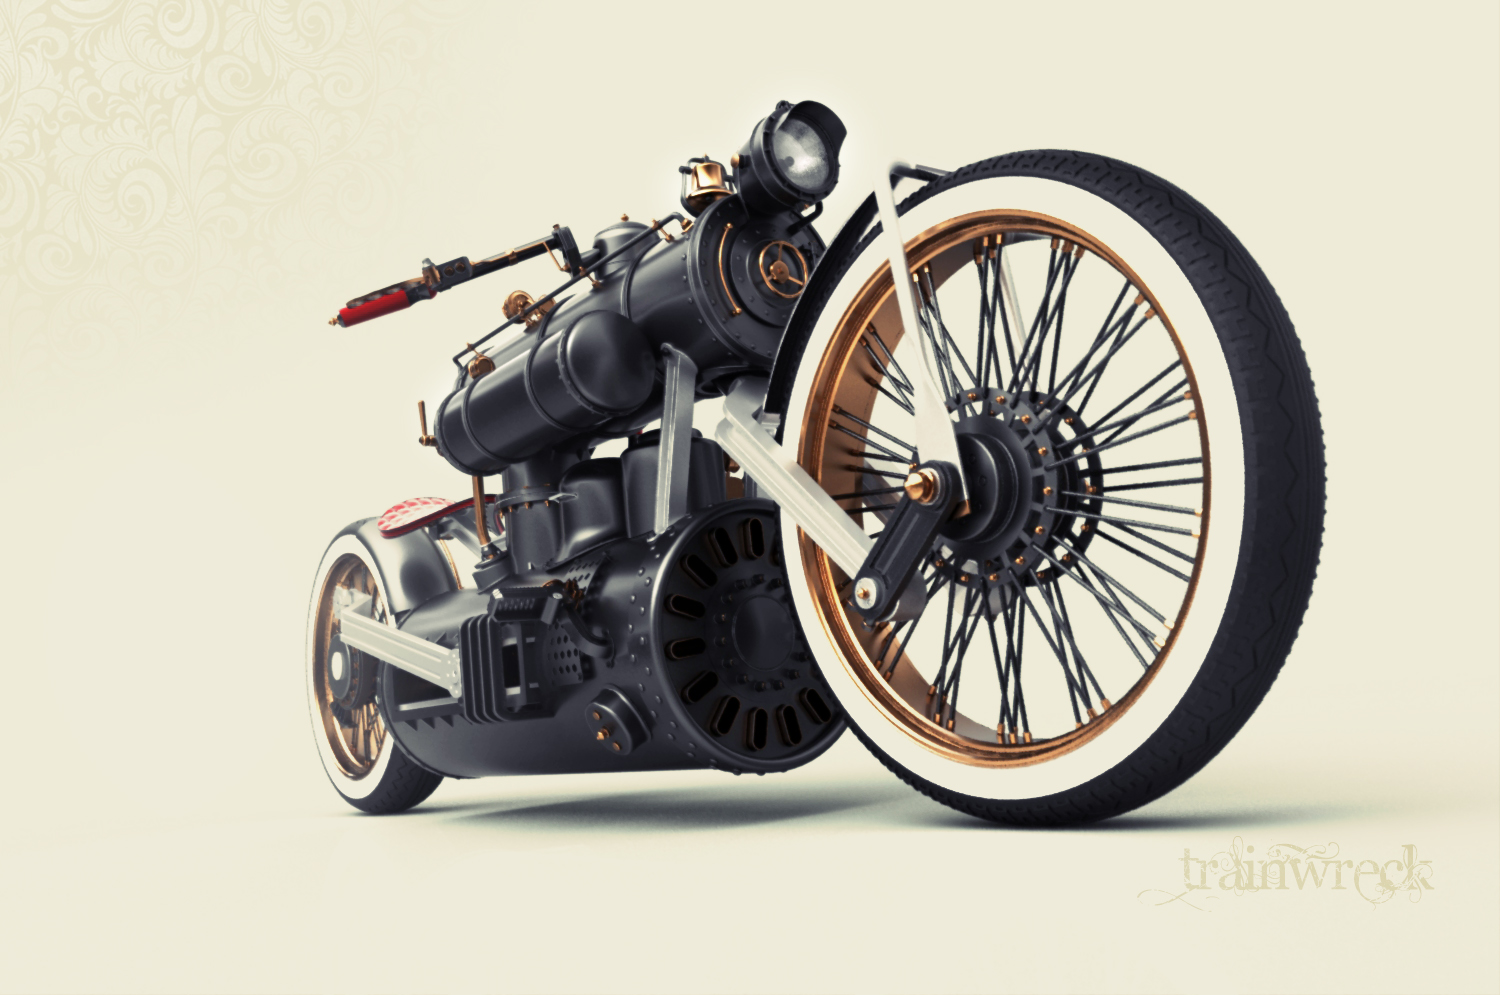 Train Wreck The Steam Engine Concept Motorcycle